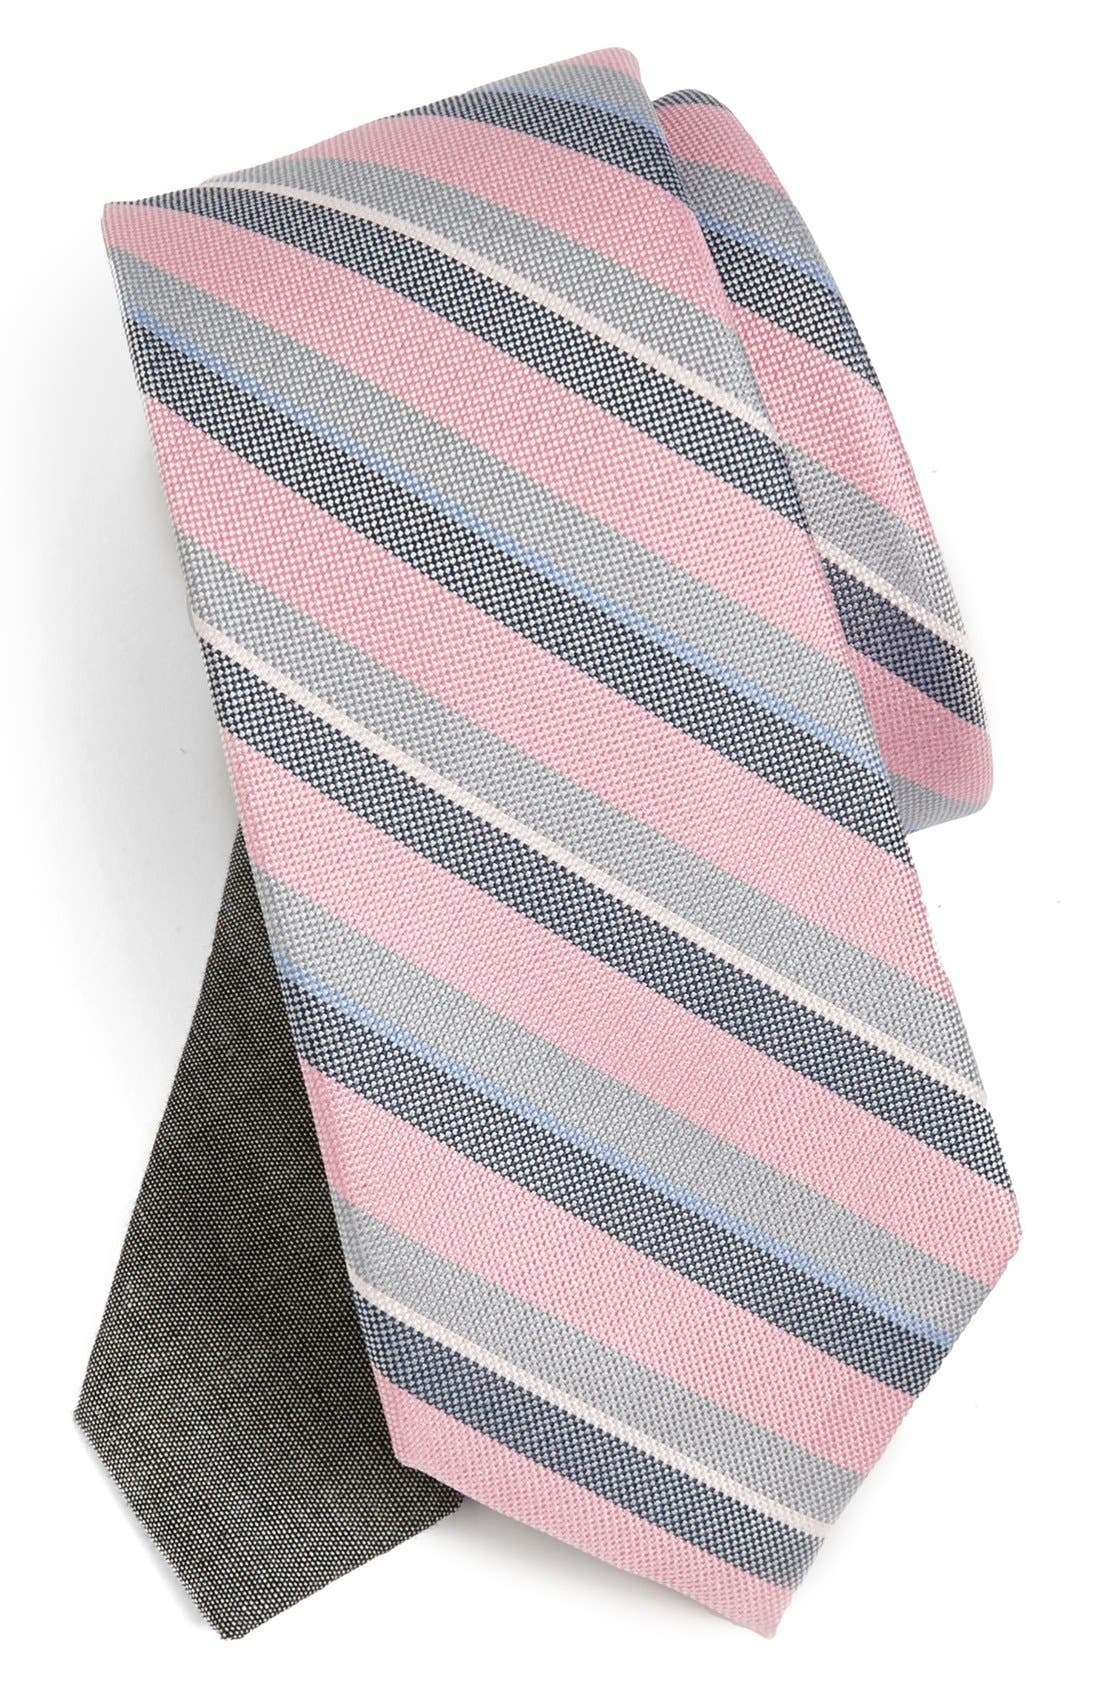 Main Image - EDIT by The Tie Bar Stripe Silk Tie (Nordstrom Exclusive)